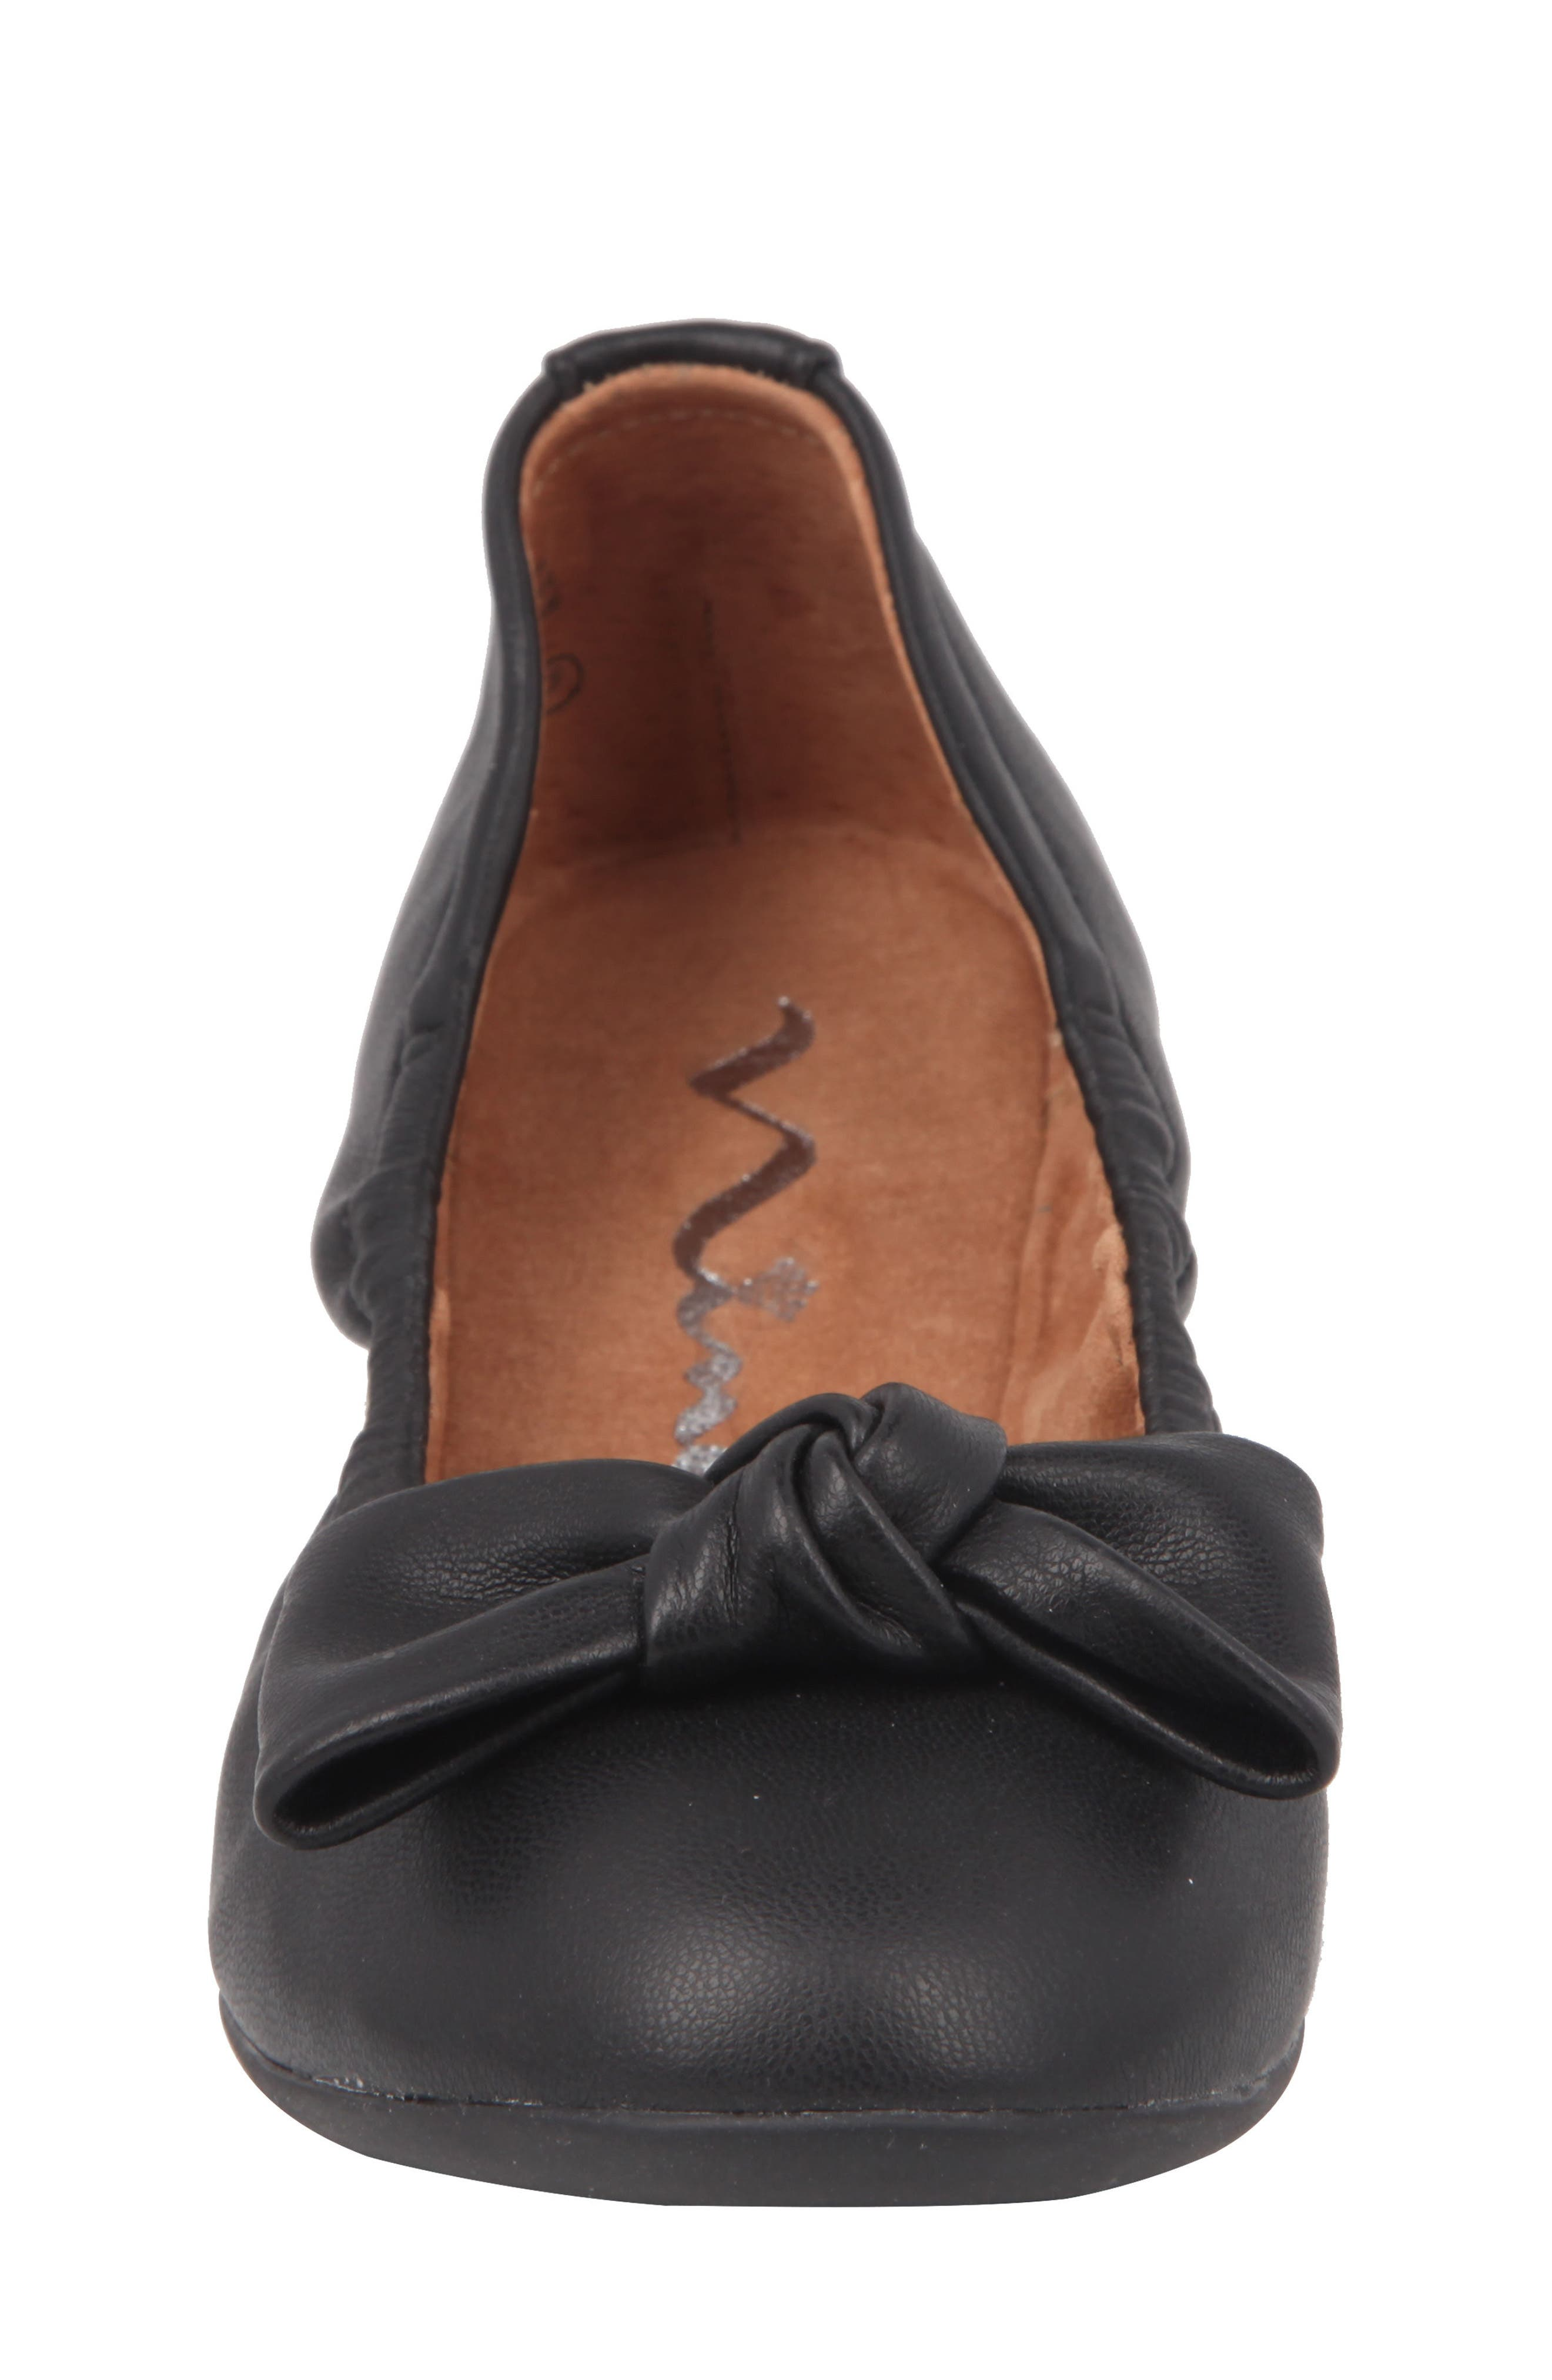 Karla Bow Ballet Flat,                             Alternate thumbnail 4, color,                             Black Smooth Leather